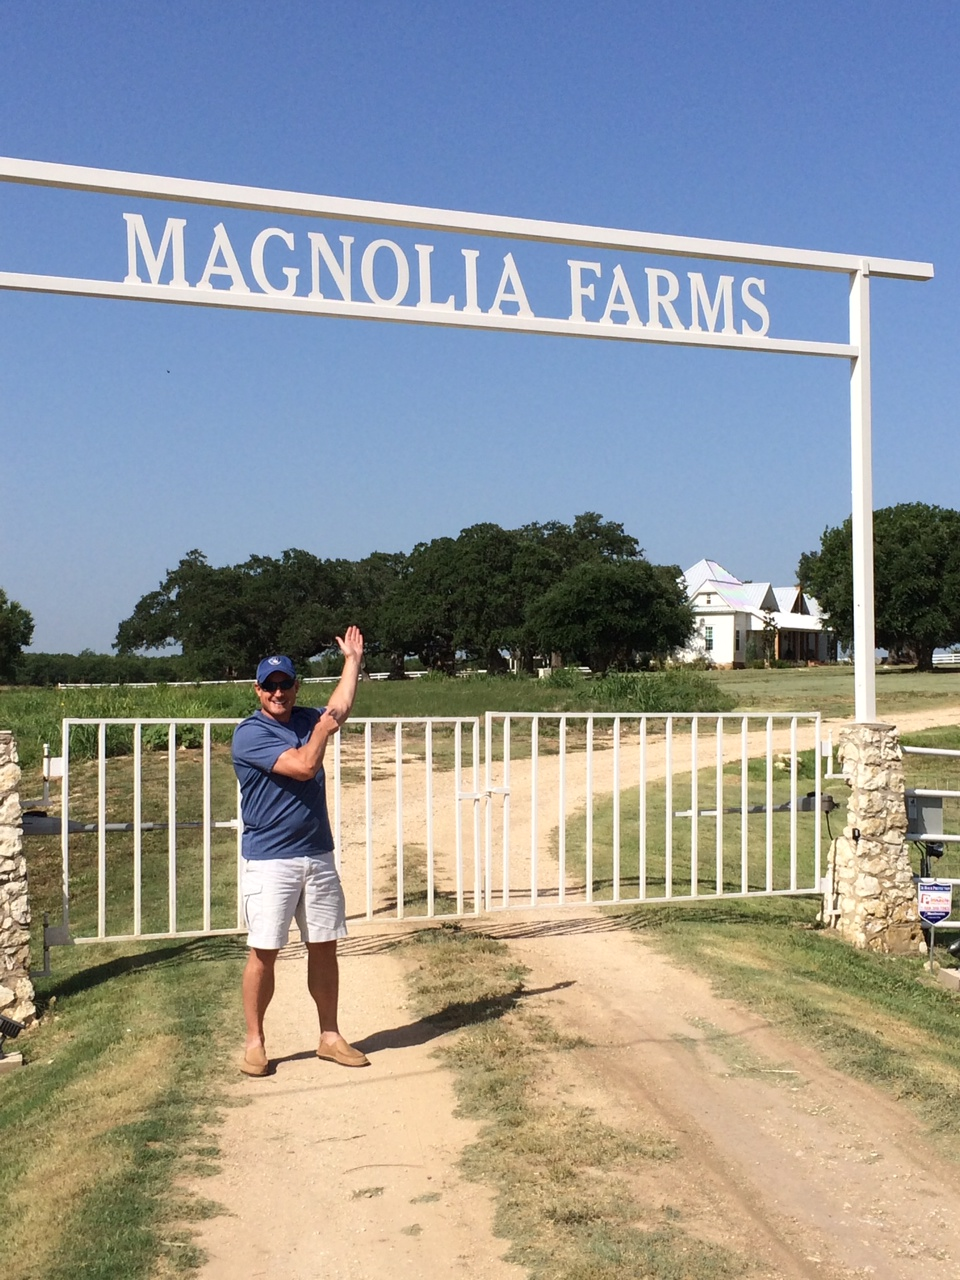 Waco texas magnolia for Magnolia farms waco tx